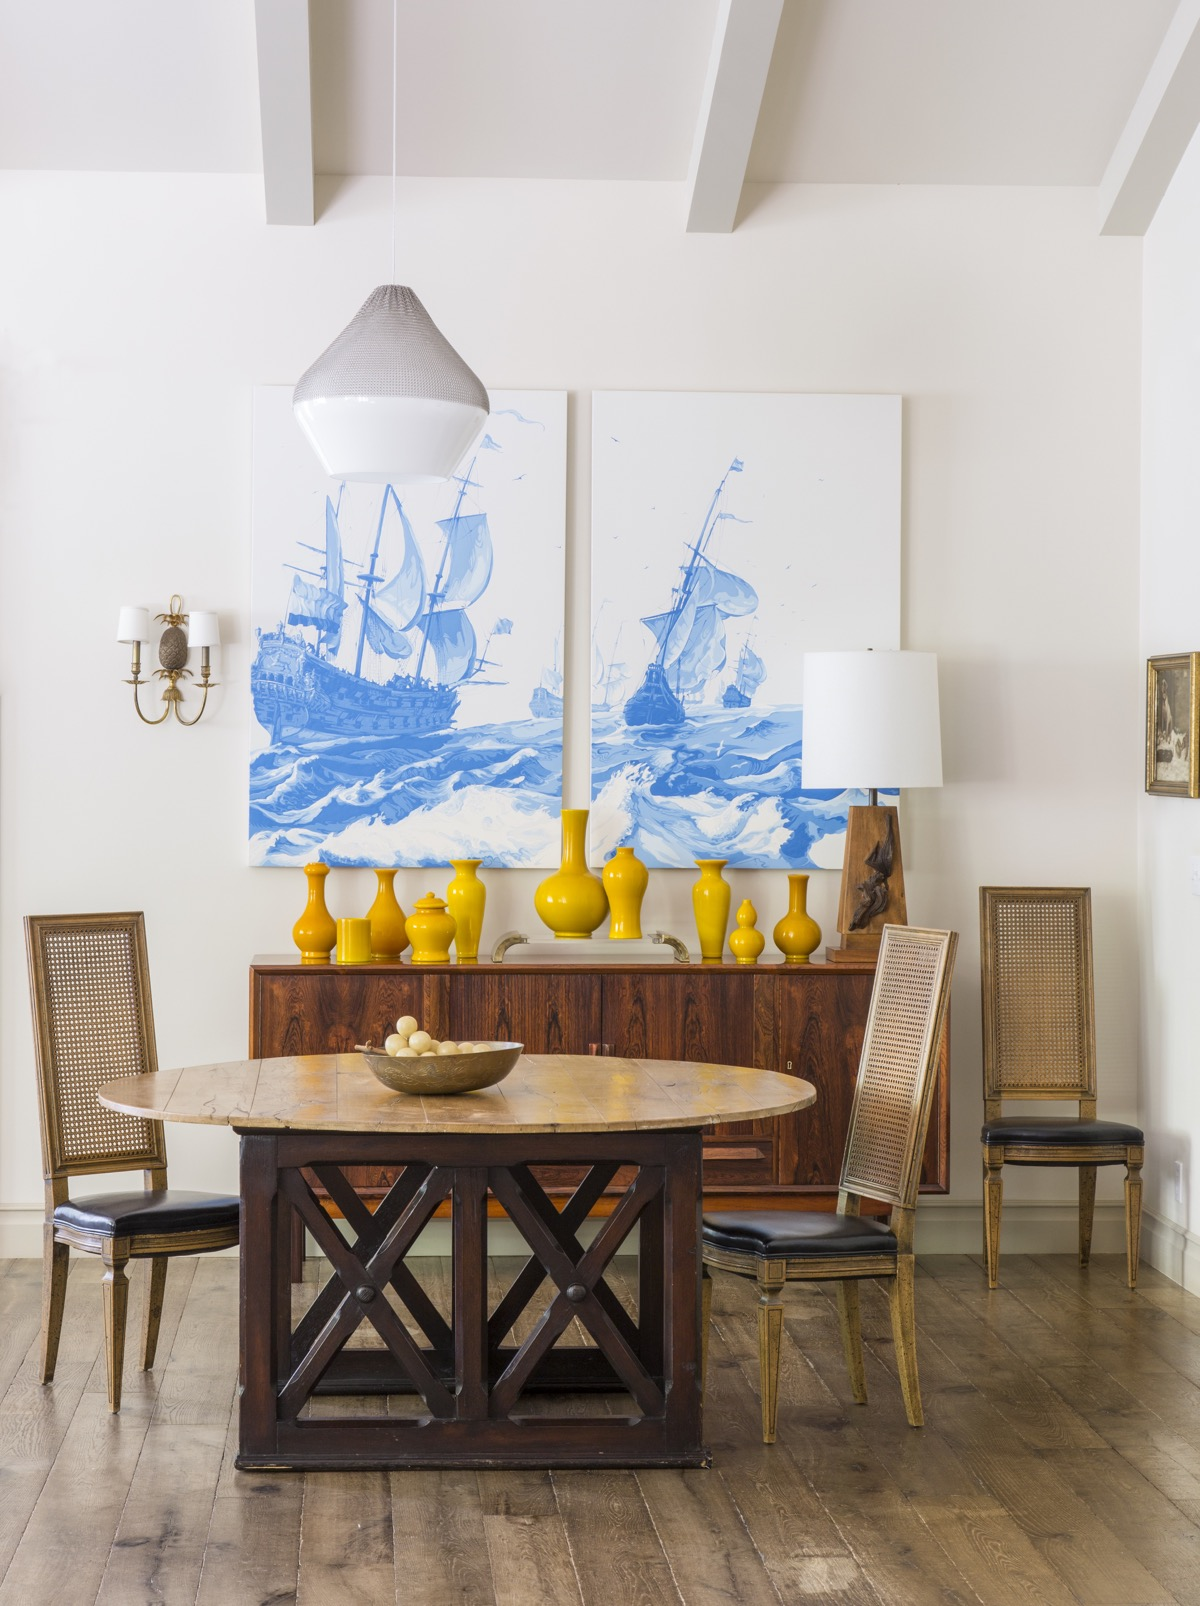 Wood dining table and chairs in light dinging area with hardwood floor, bowl with large grapes, wall hutch with various sized yellow ceramics, lamp, and wall painting.